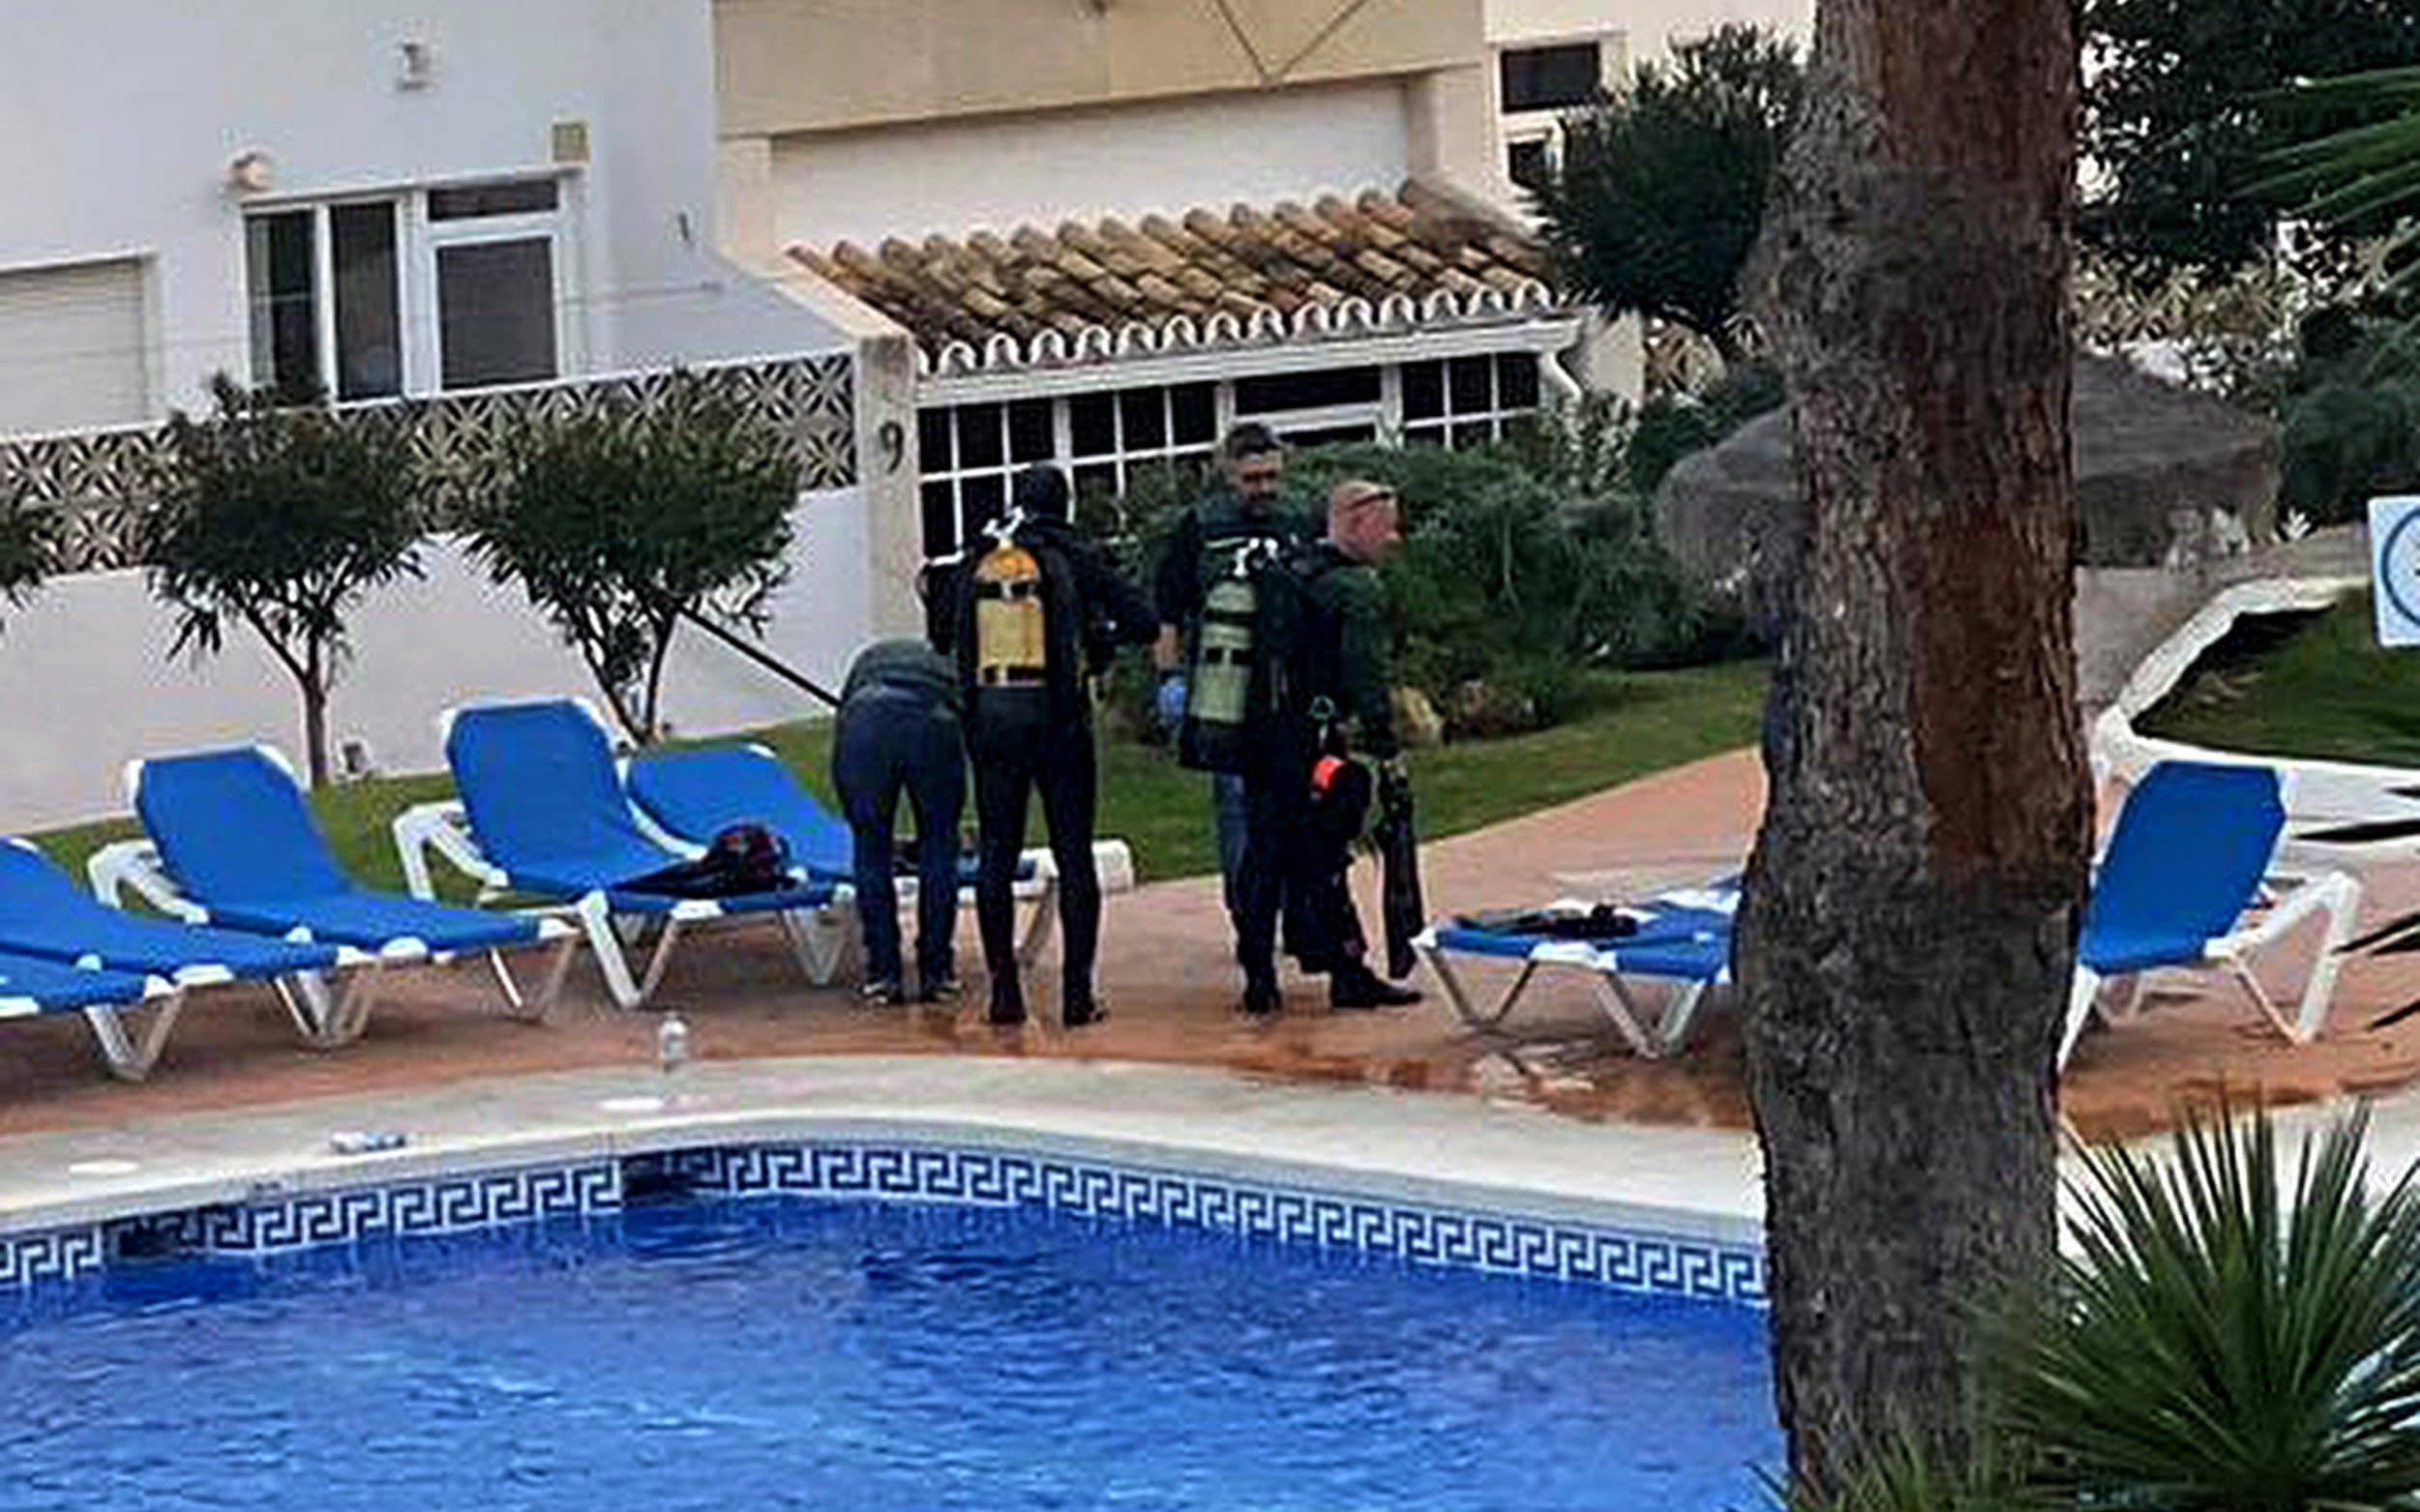 Three members of British family die after drowning in swimming pool at their Costa Del Sol hotel